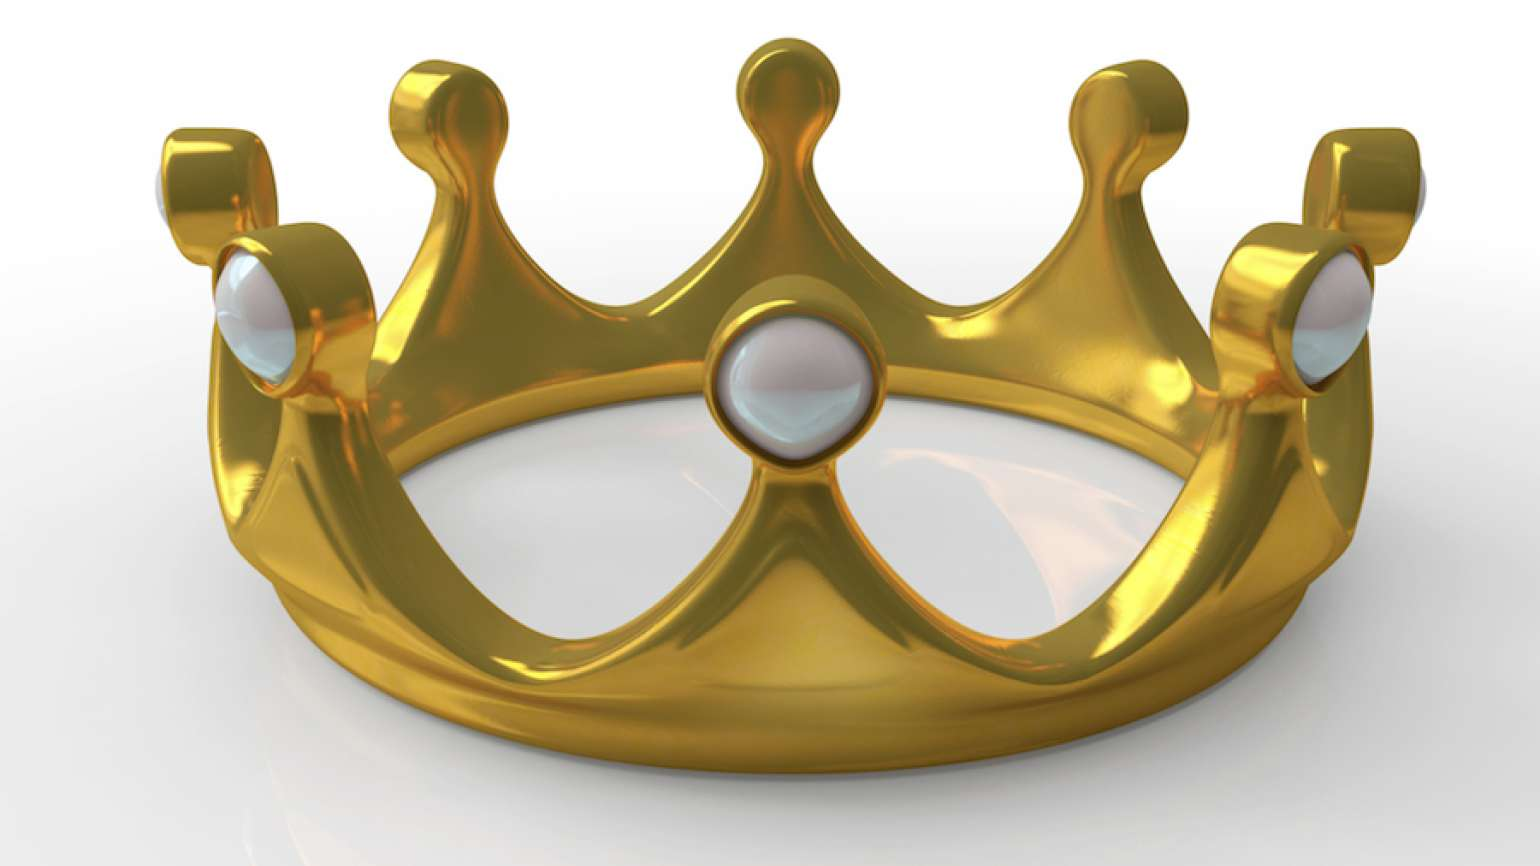 Photo of a crown by ivan_7316, Thinkstock.